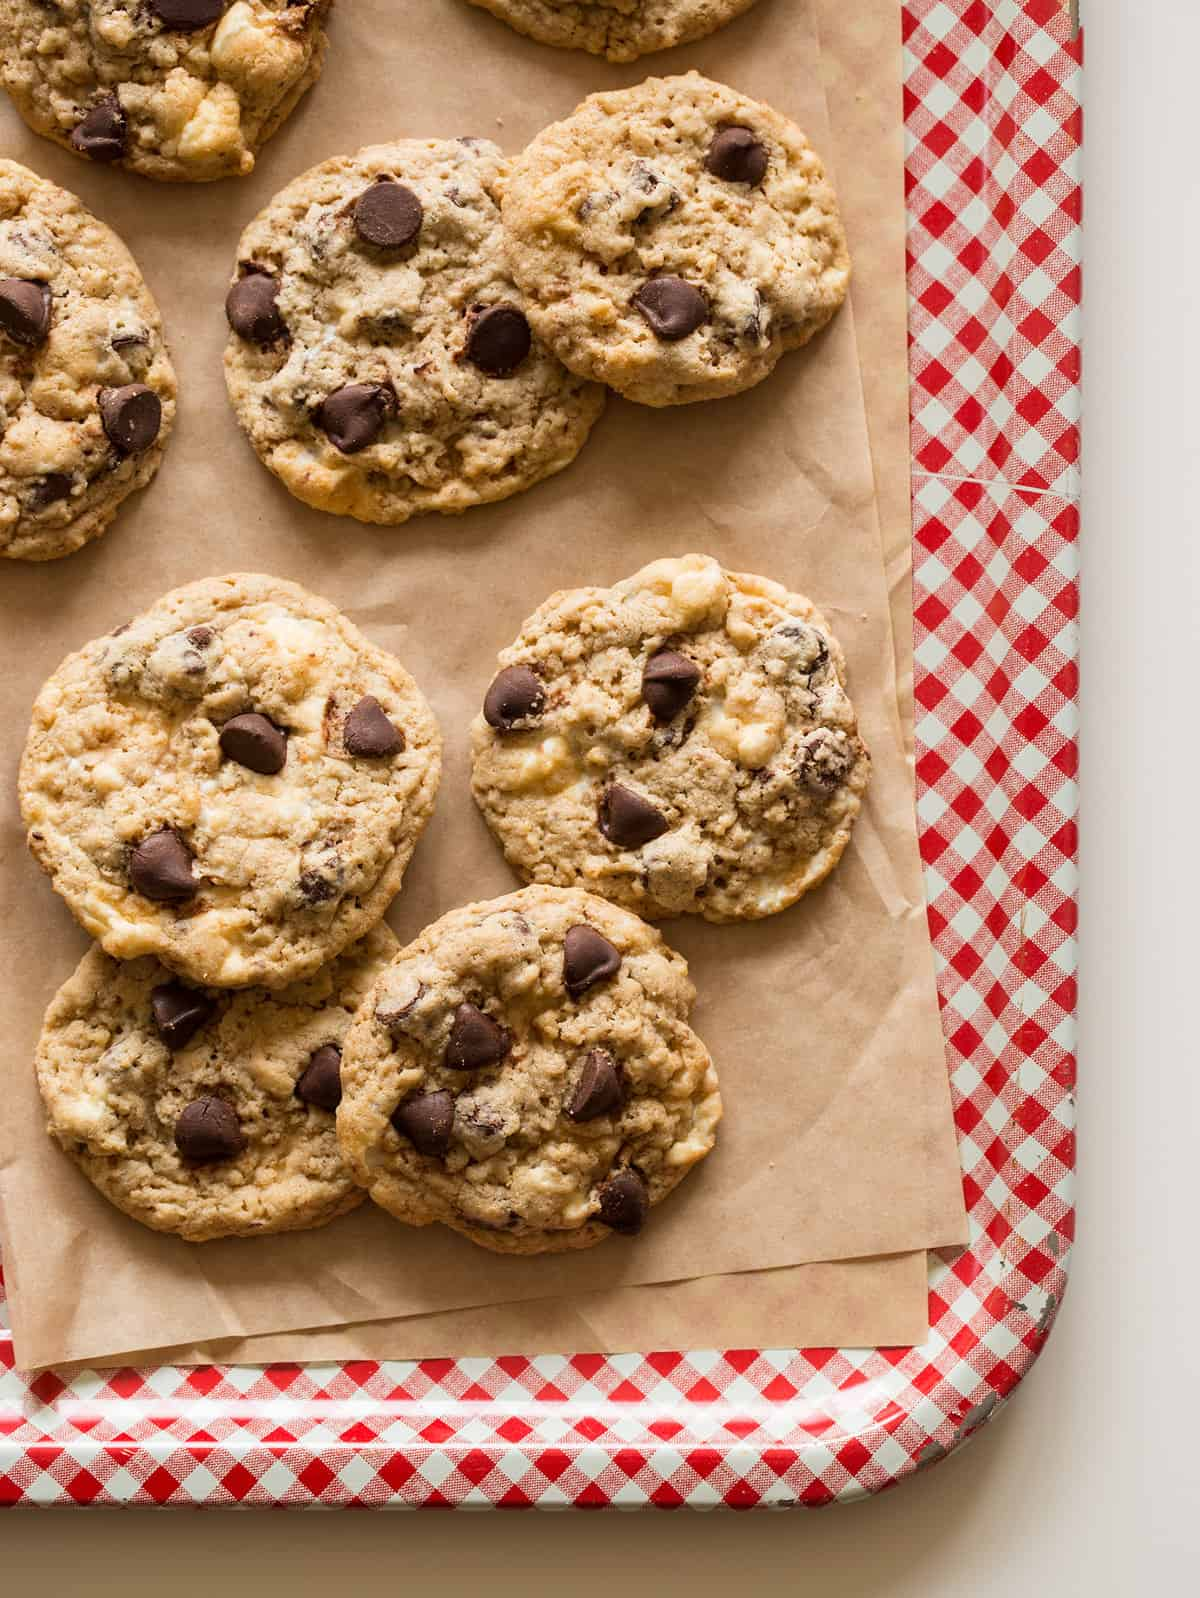 Chocolate Chip Rice Krispies Treat Cookies | Spoon Fork Bacon